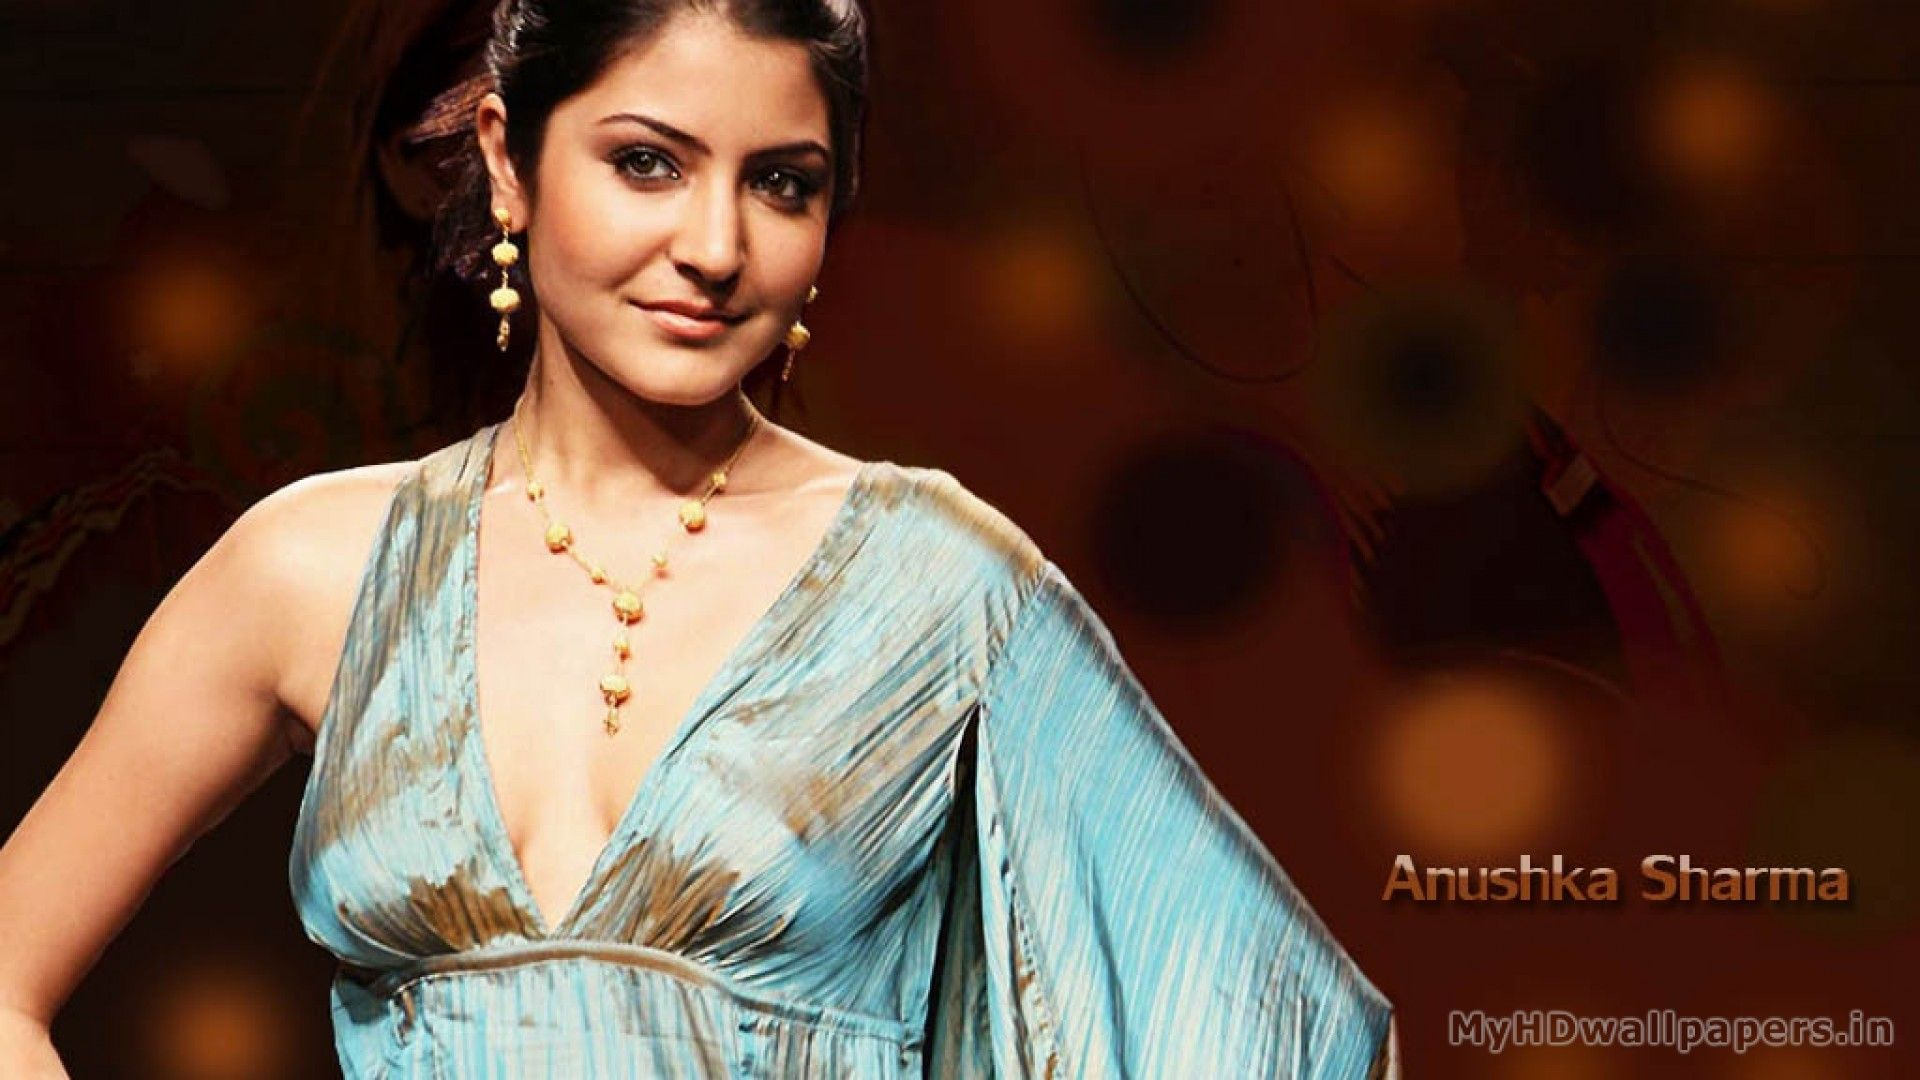 anushka sharma desktop hd wallpapers free download http://www